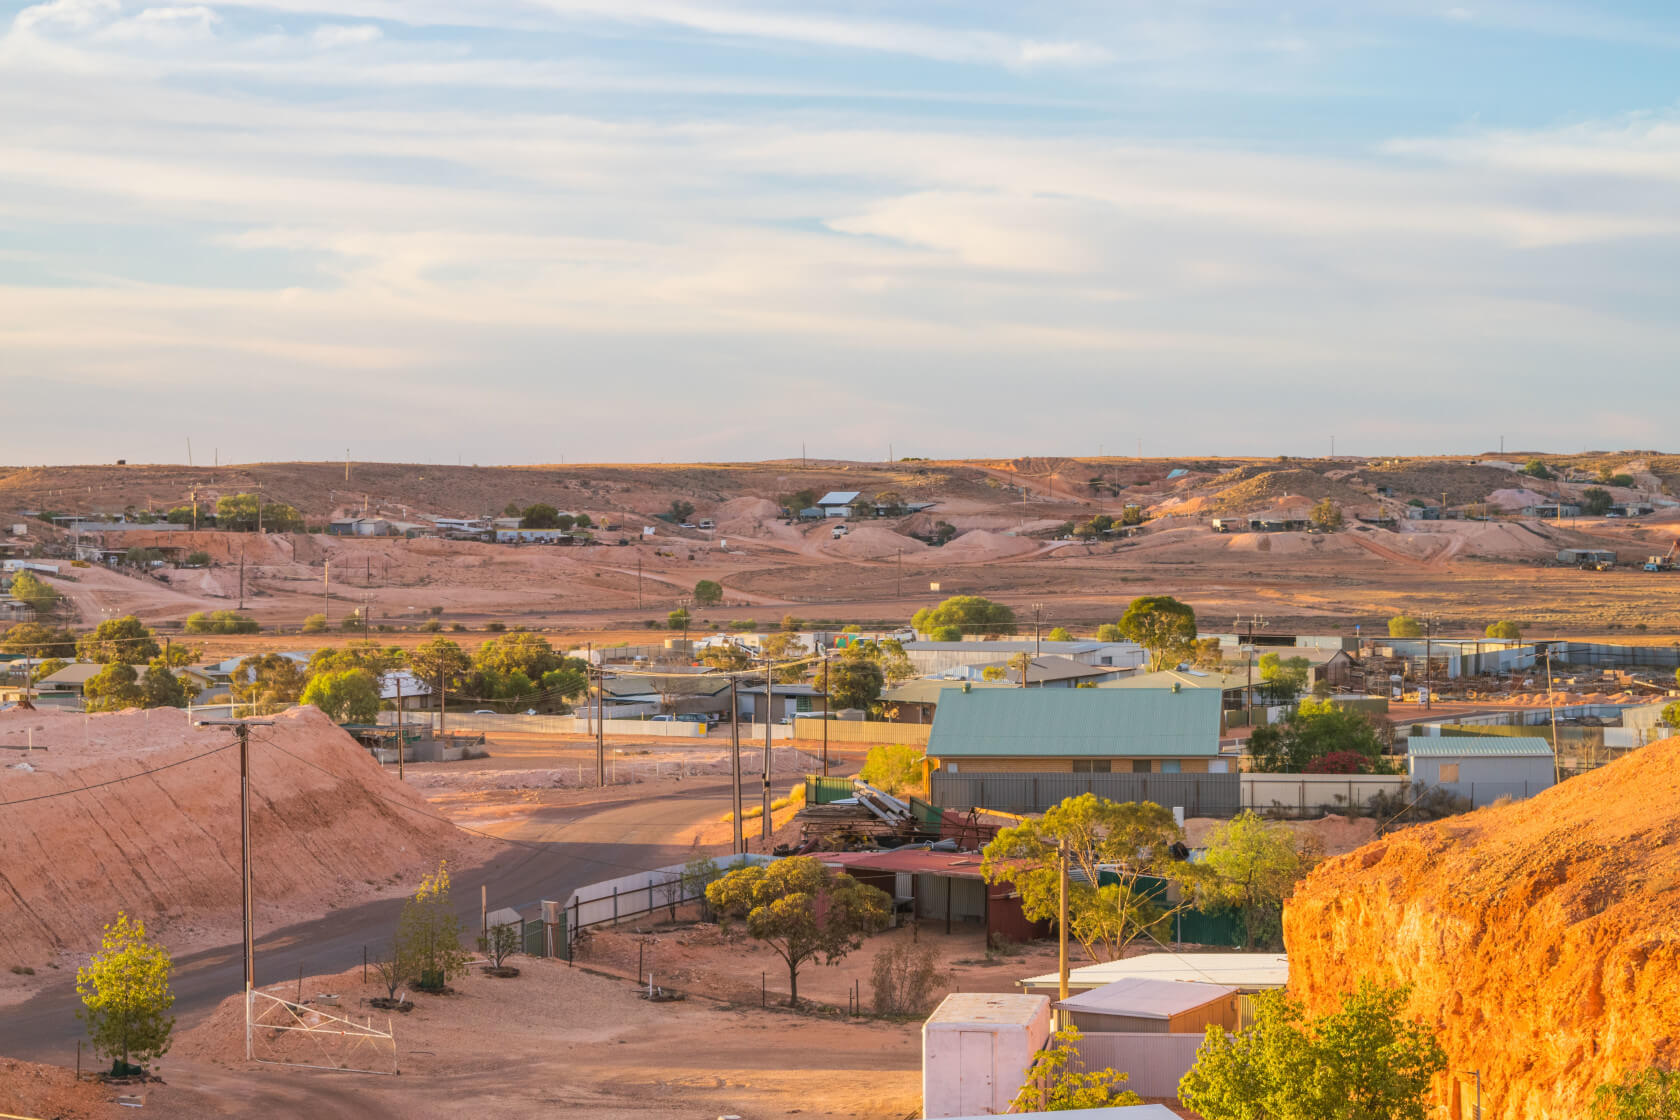 Coober Pedy Australia: An Underground Opal Mining Town in